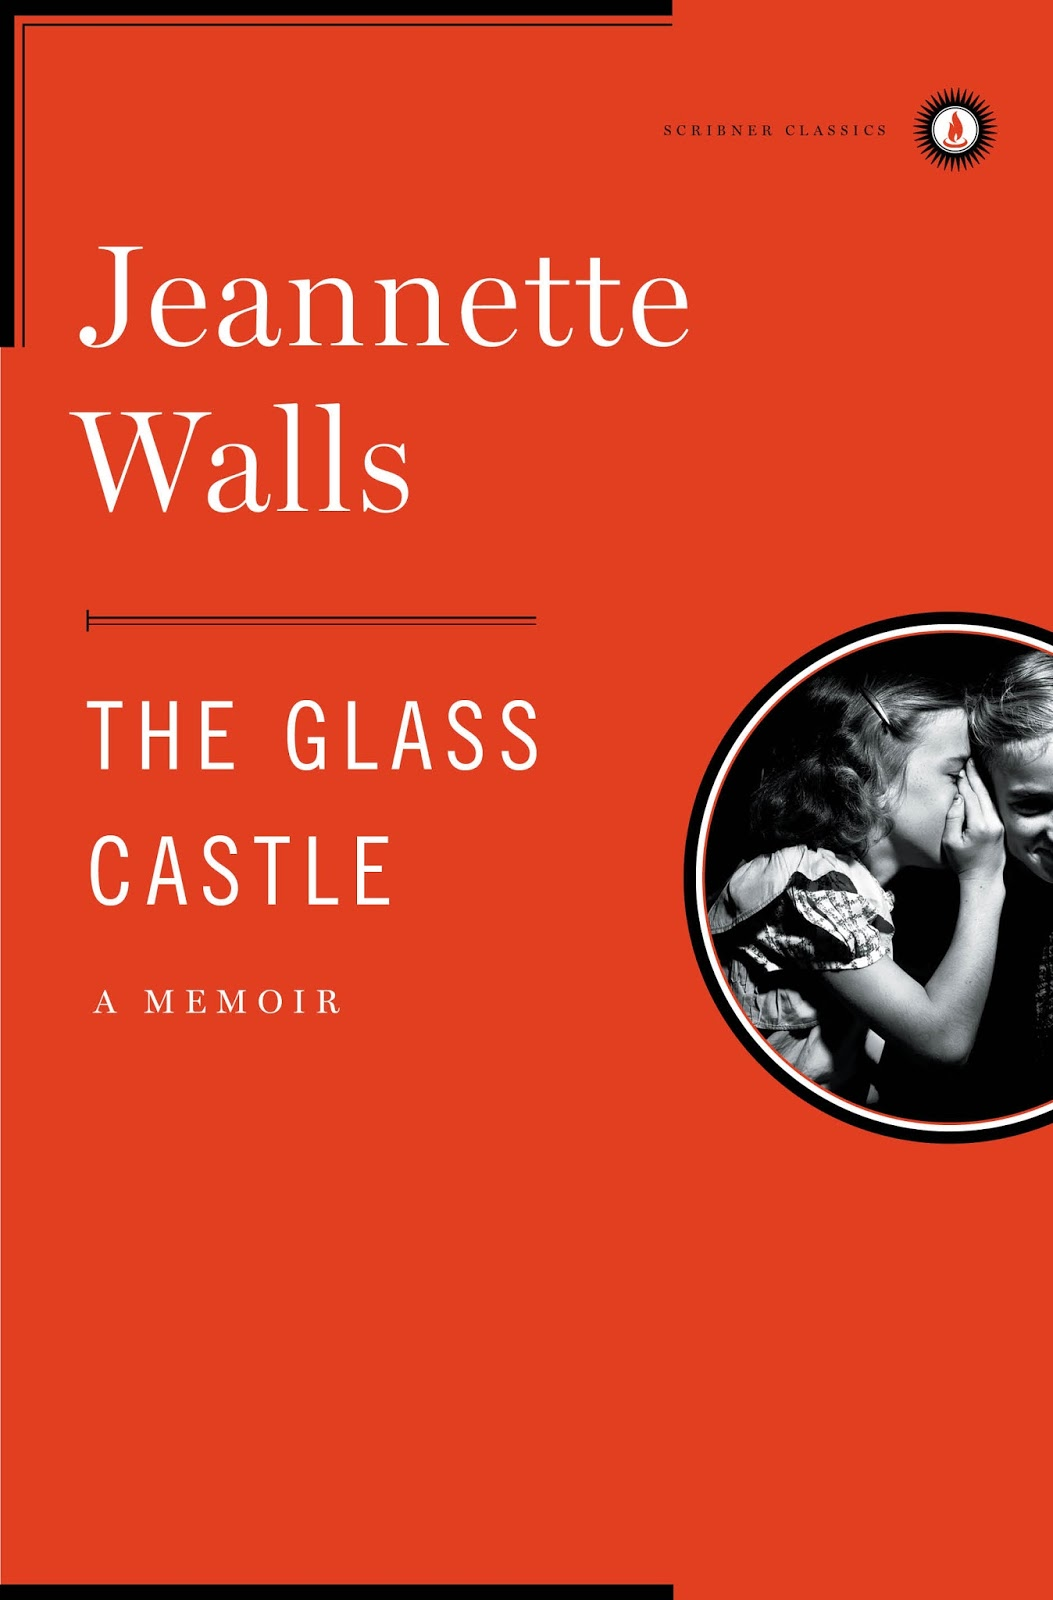 the glass castle an essay avinashaunaruth the glass castle an essay one never knows what is in the waiting on the journey of life there is no guarantee if happiness and good luck will prevail or